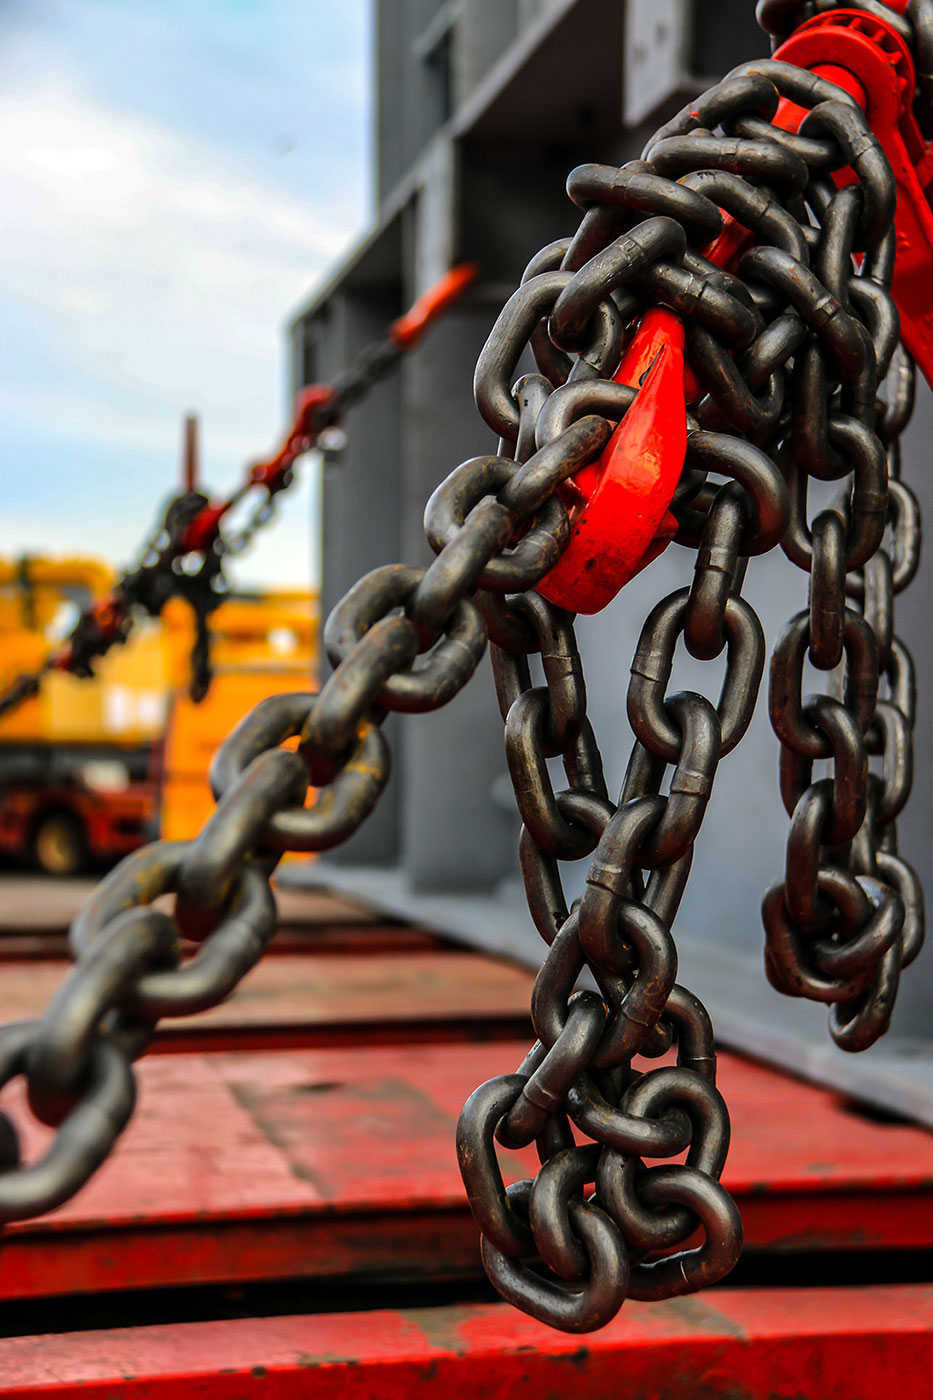 Chains to keep boats in place